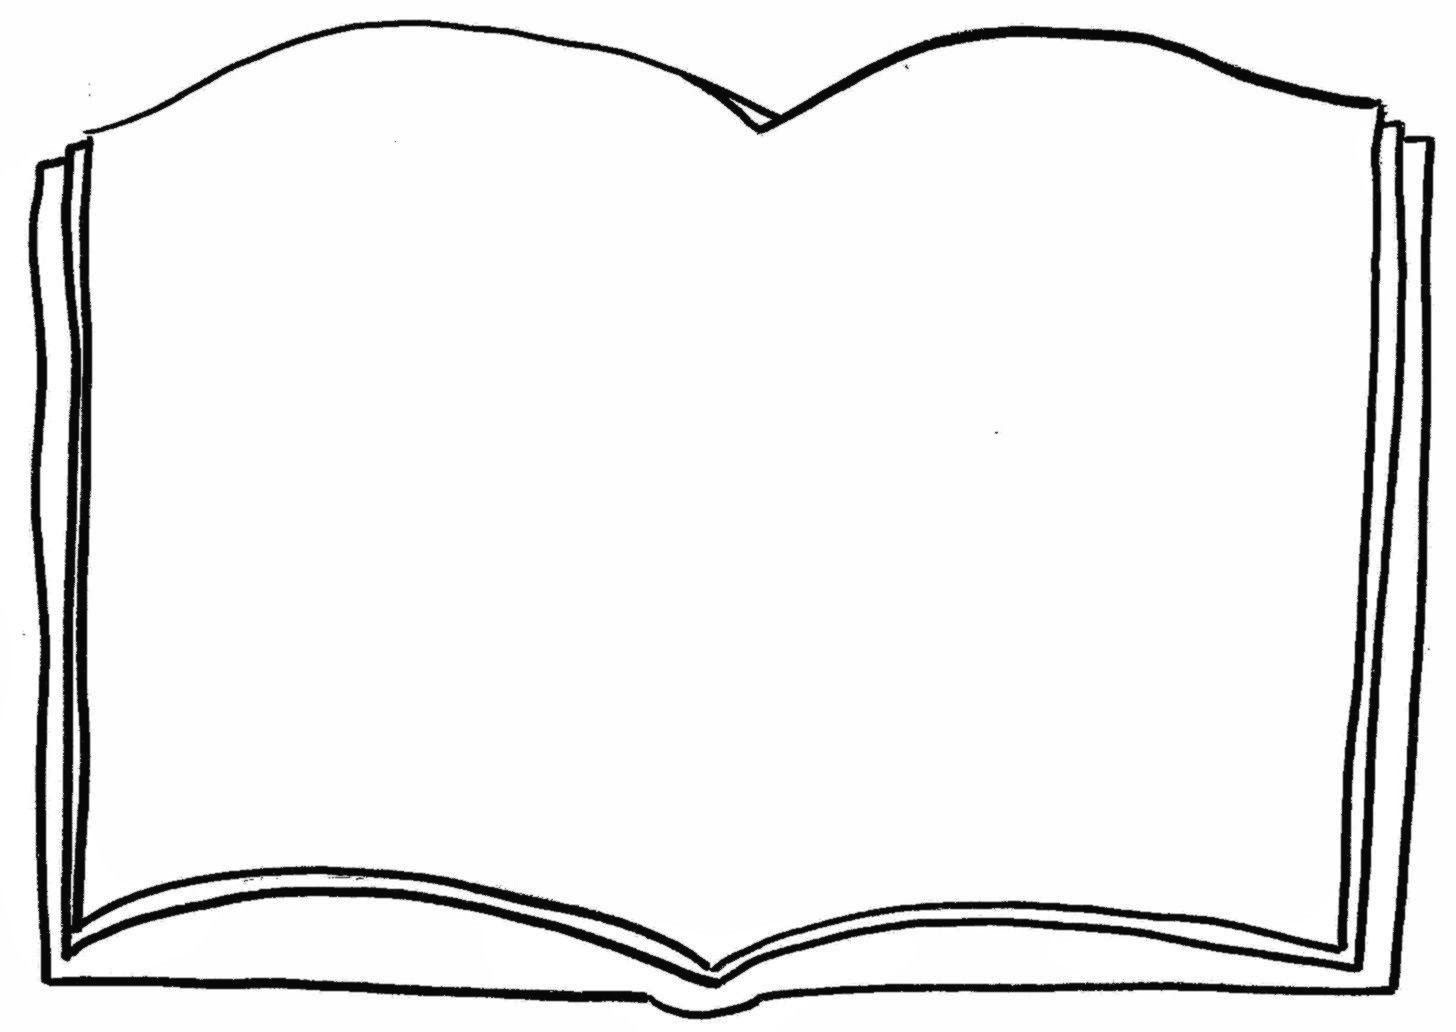 1456x1032 Bible Drawing Outline For Free Download